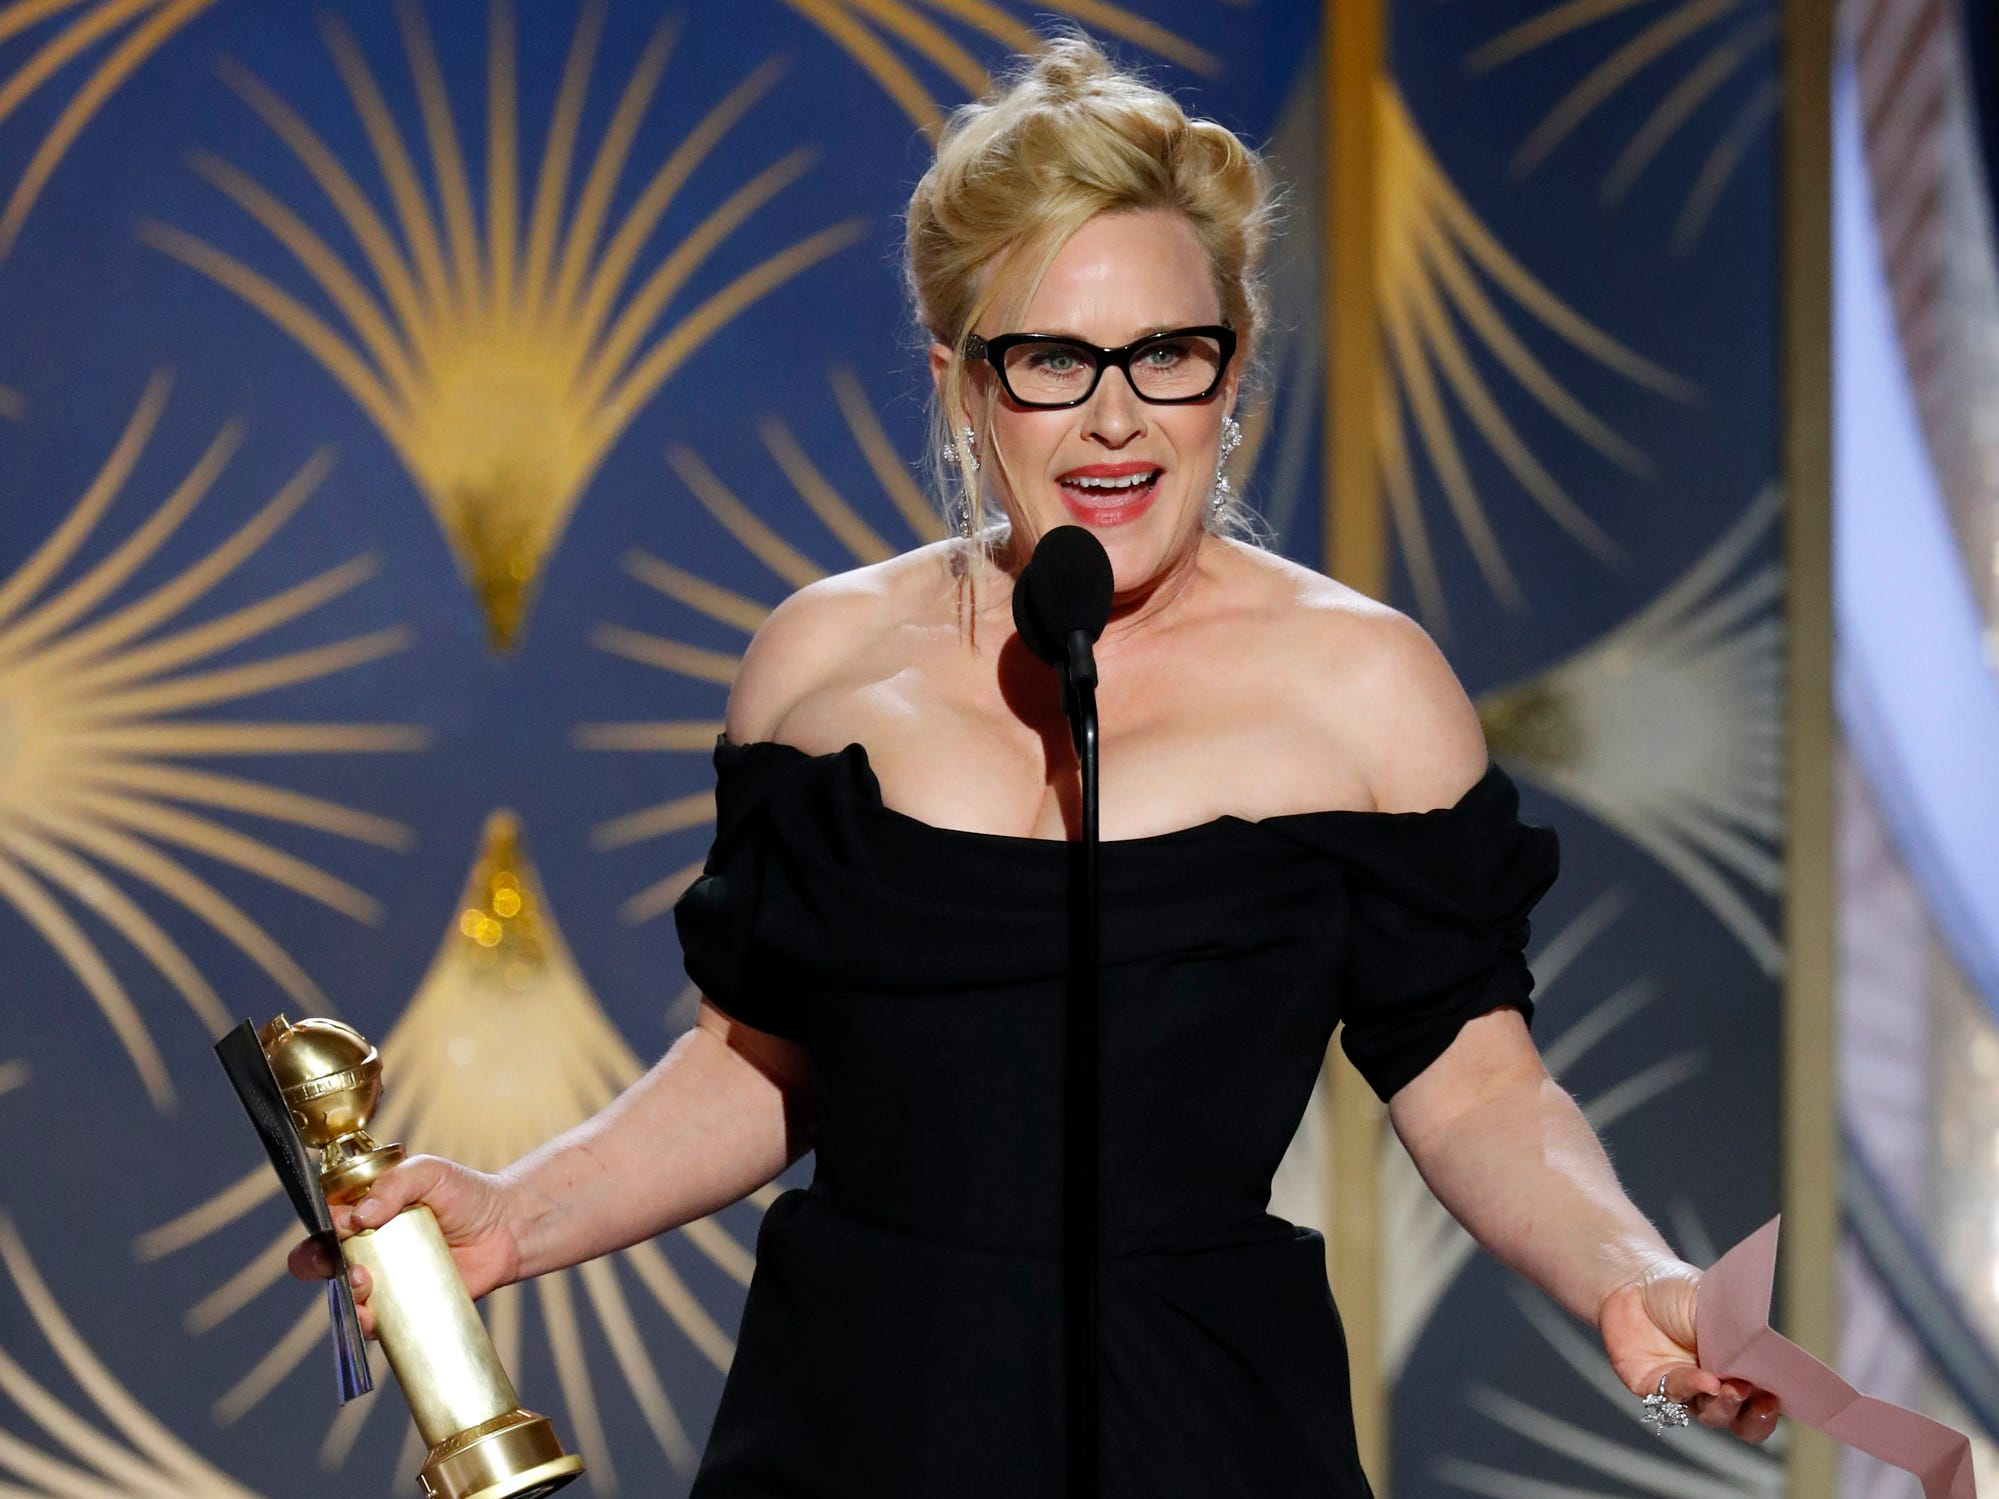 Patricia Arquette accepts the Best Actress - Limited Series or Motion Picture Made for TV award during the 76th Golden Globe Awards.